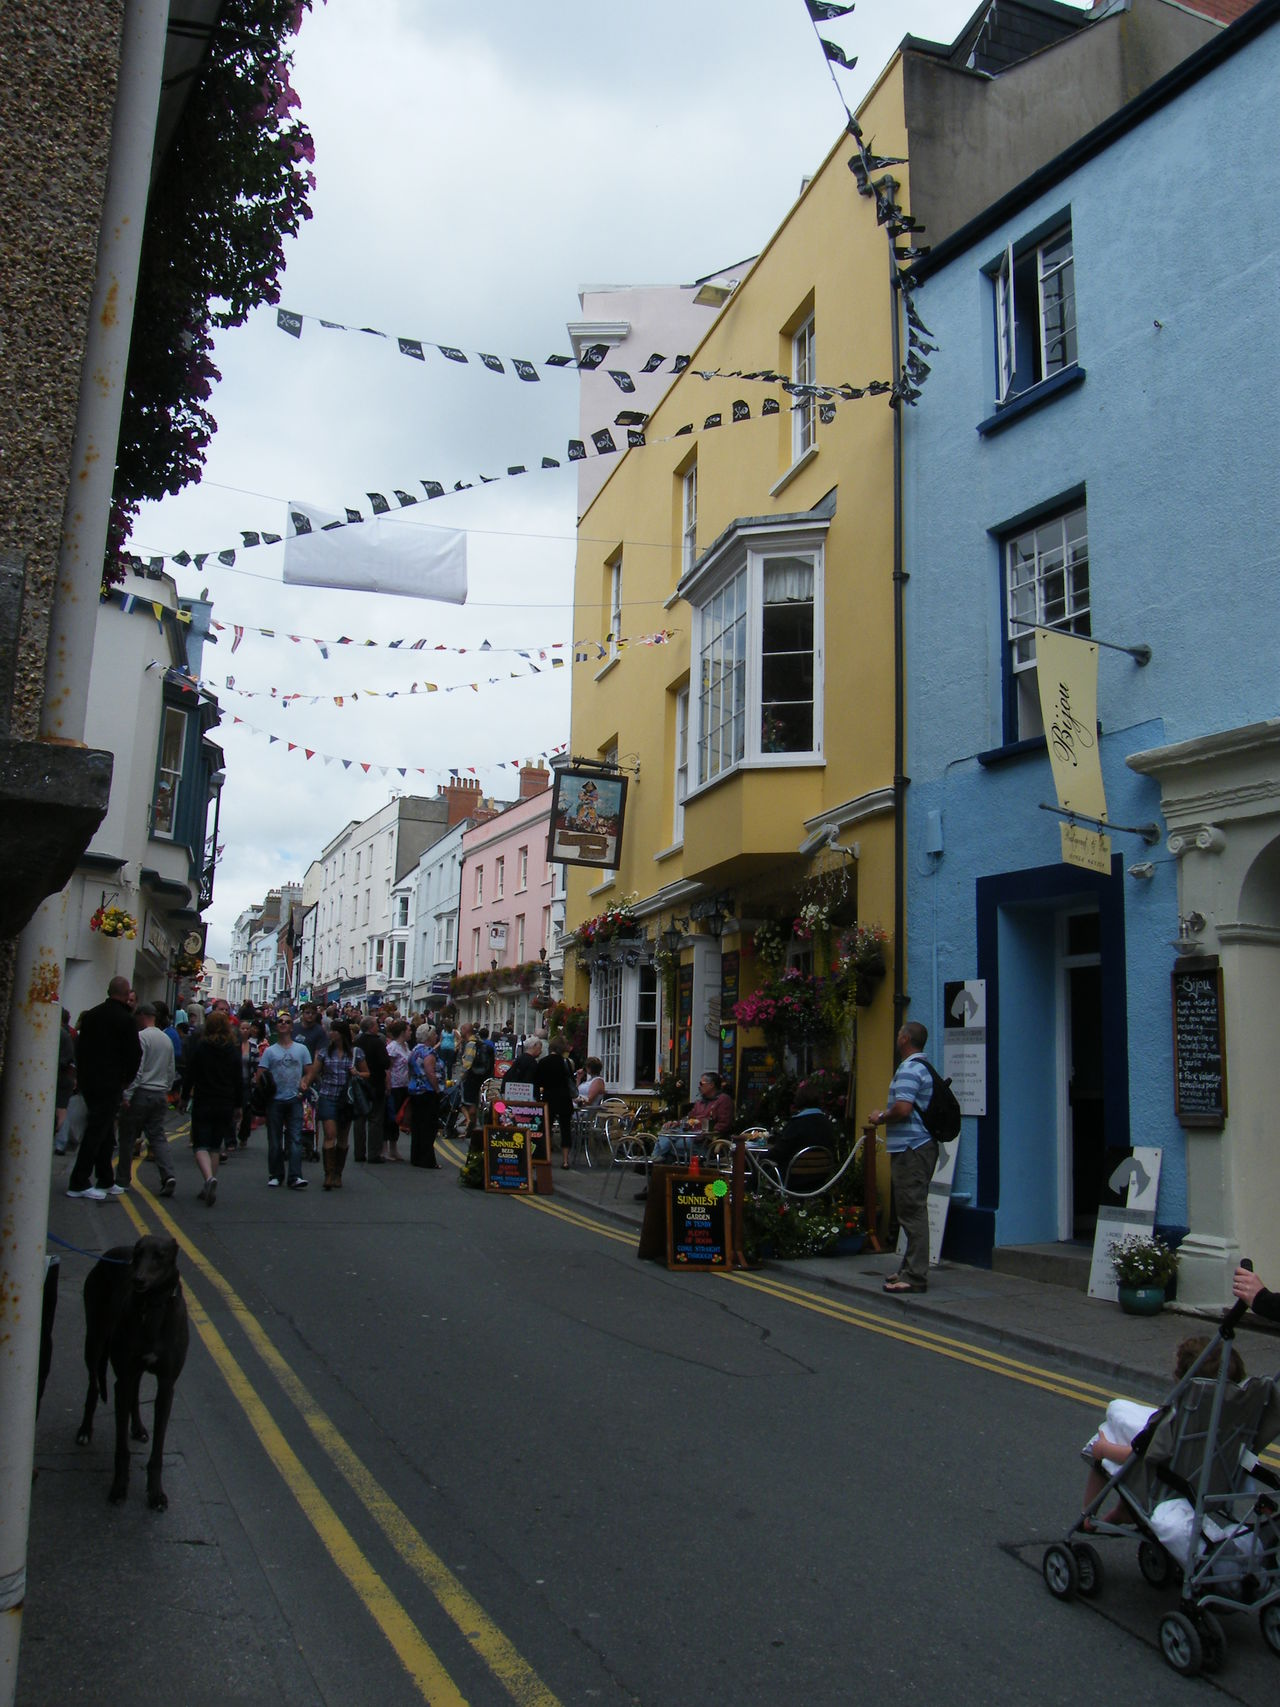 Adult Adults Only Architecture Building Exterior Built Structure City Crowd Day Large Group Of People Men Outdoors Painted Houses Pembrokeshire Pembrokeshire Coast Pembrokeshire Coastal Path People Real People Road Seaside Town Sky Street Tenby Women